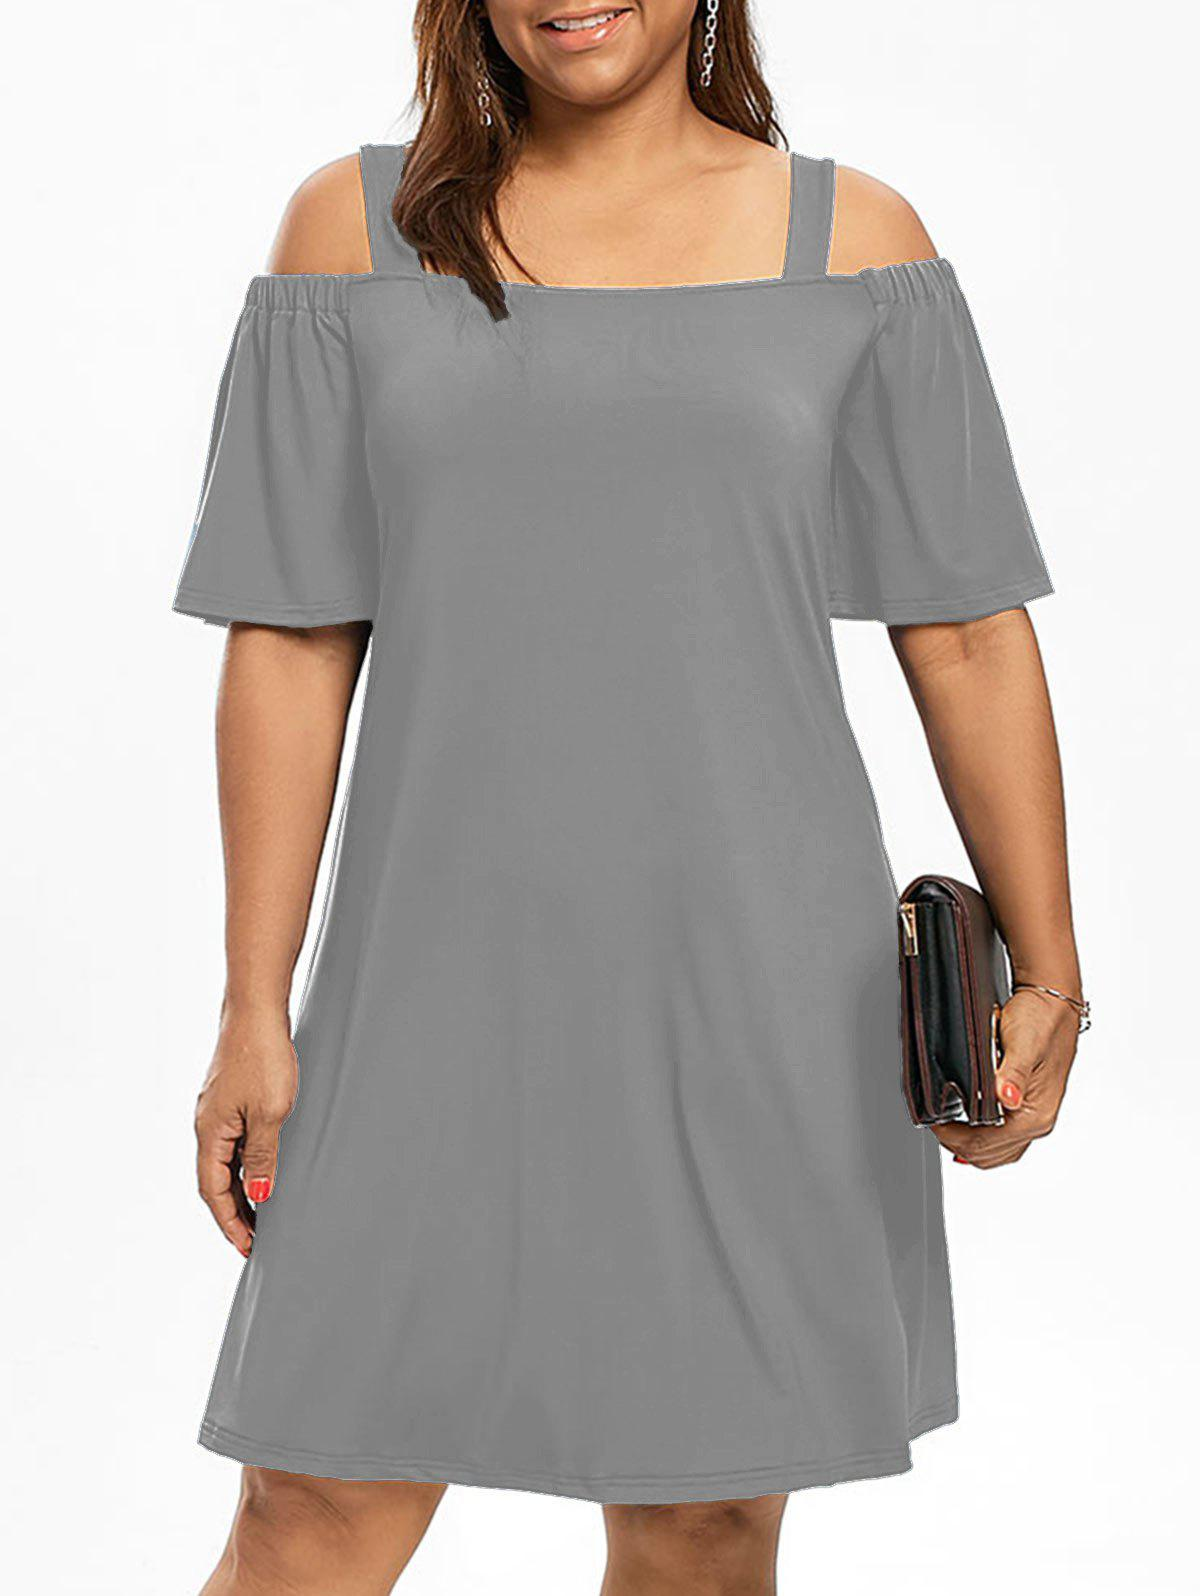 Robe Manches 1/2 Épaules Nues Grande Taille - gris 5XL